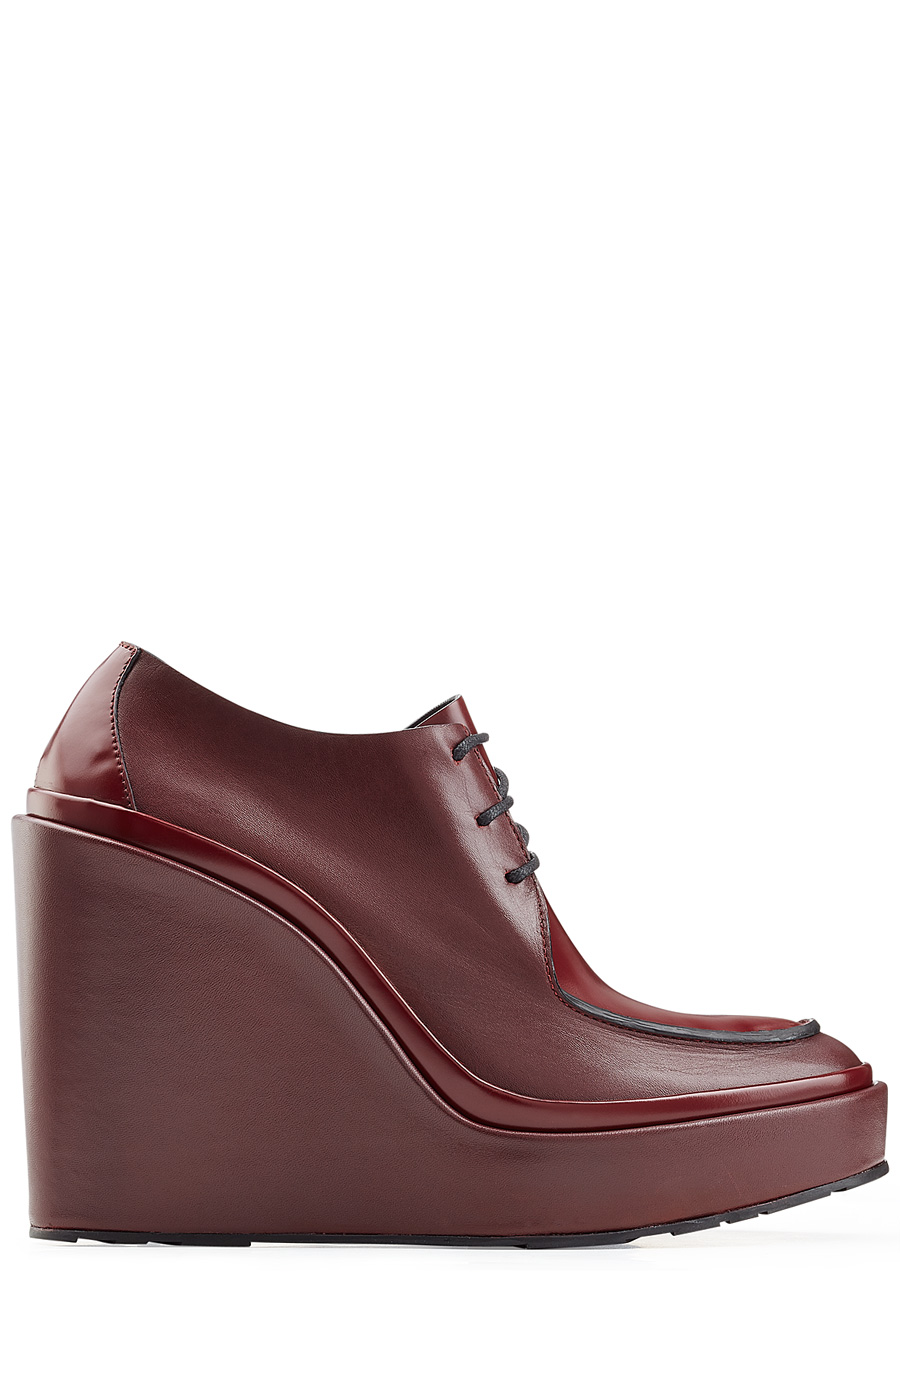 Jil Sander Platform Leather Derby Shoes In Red